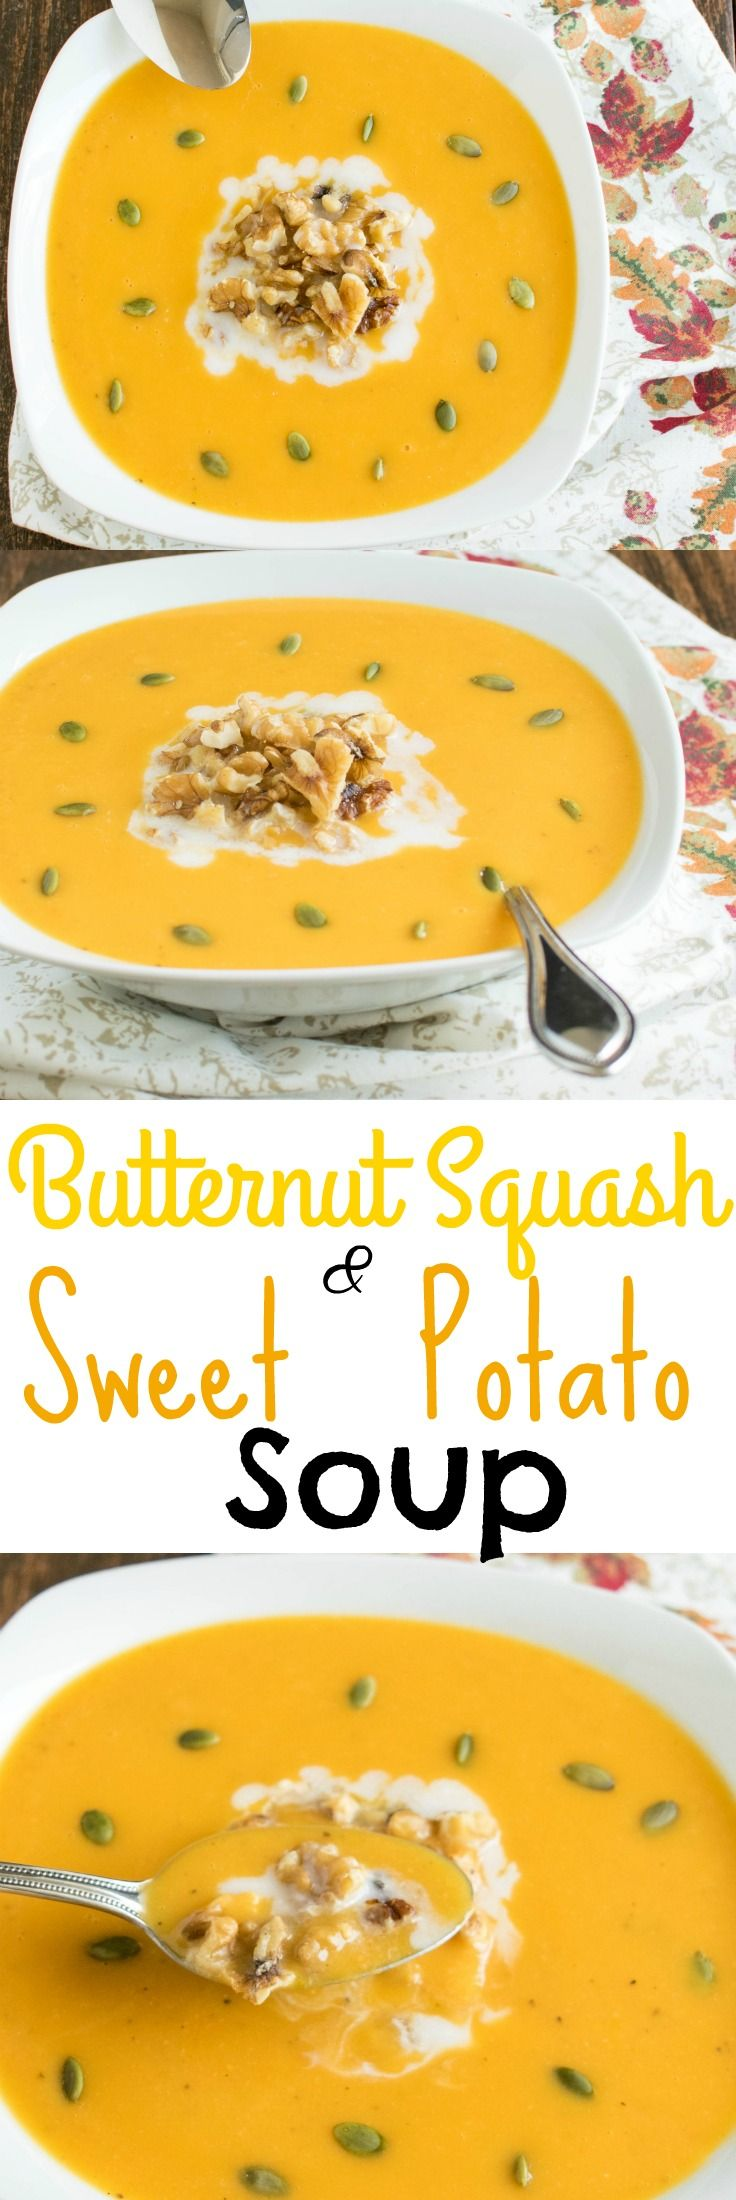 Butternut Squash and Sweet Potato Soup - with very few ingredients this vegan paleo soup is a perfect wholesome dish for those cold and busy nights | kiipfit.com (Vegan Paleo Casserole)